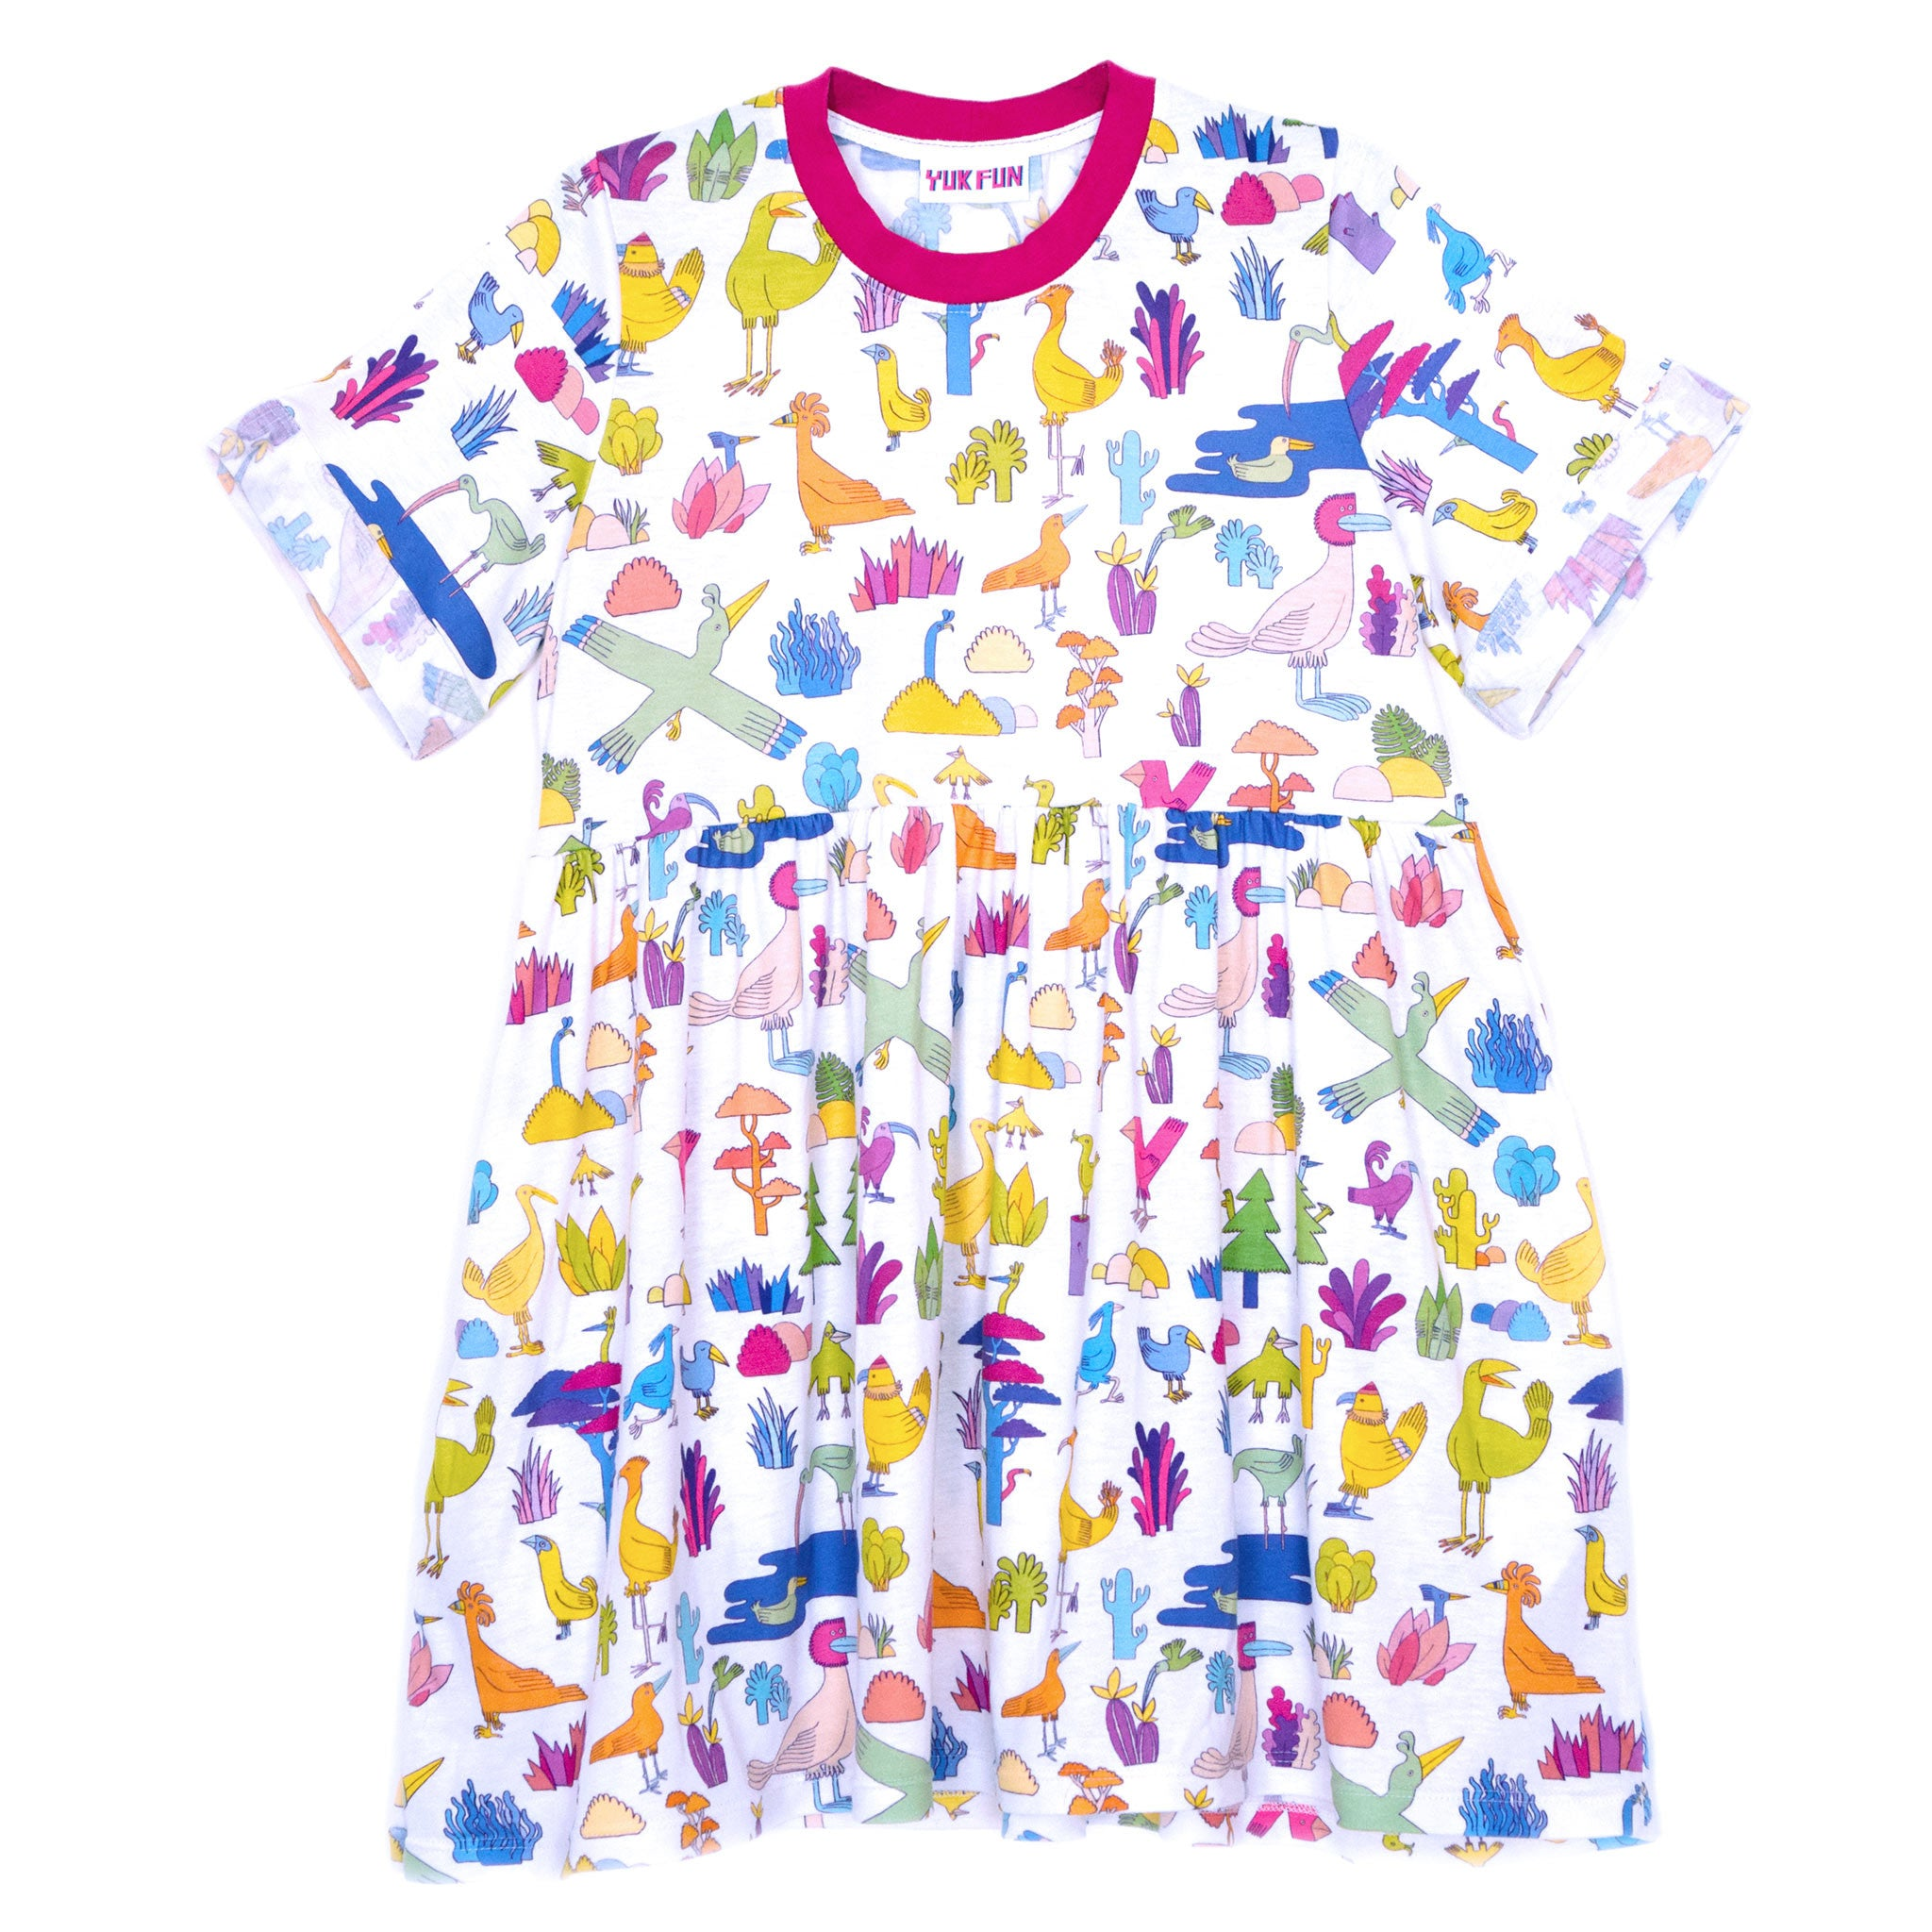 YUK FUN Birds and Cacti all-over print T-shirt smock dress